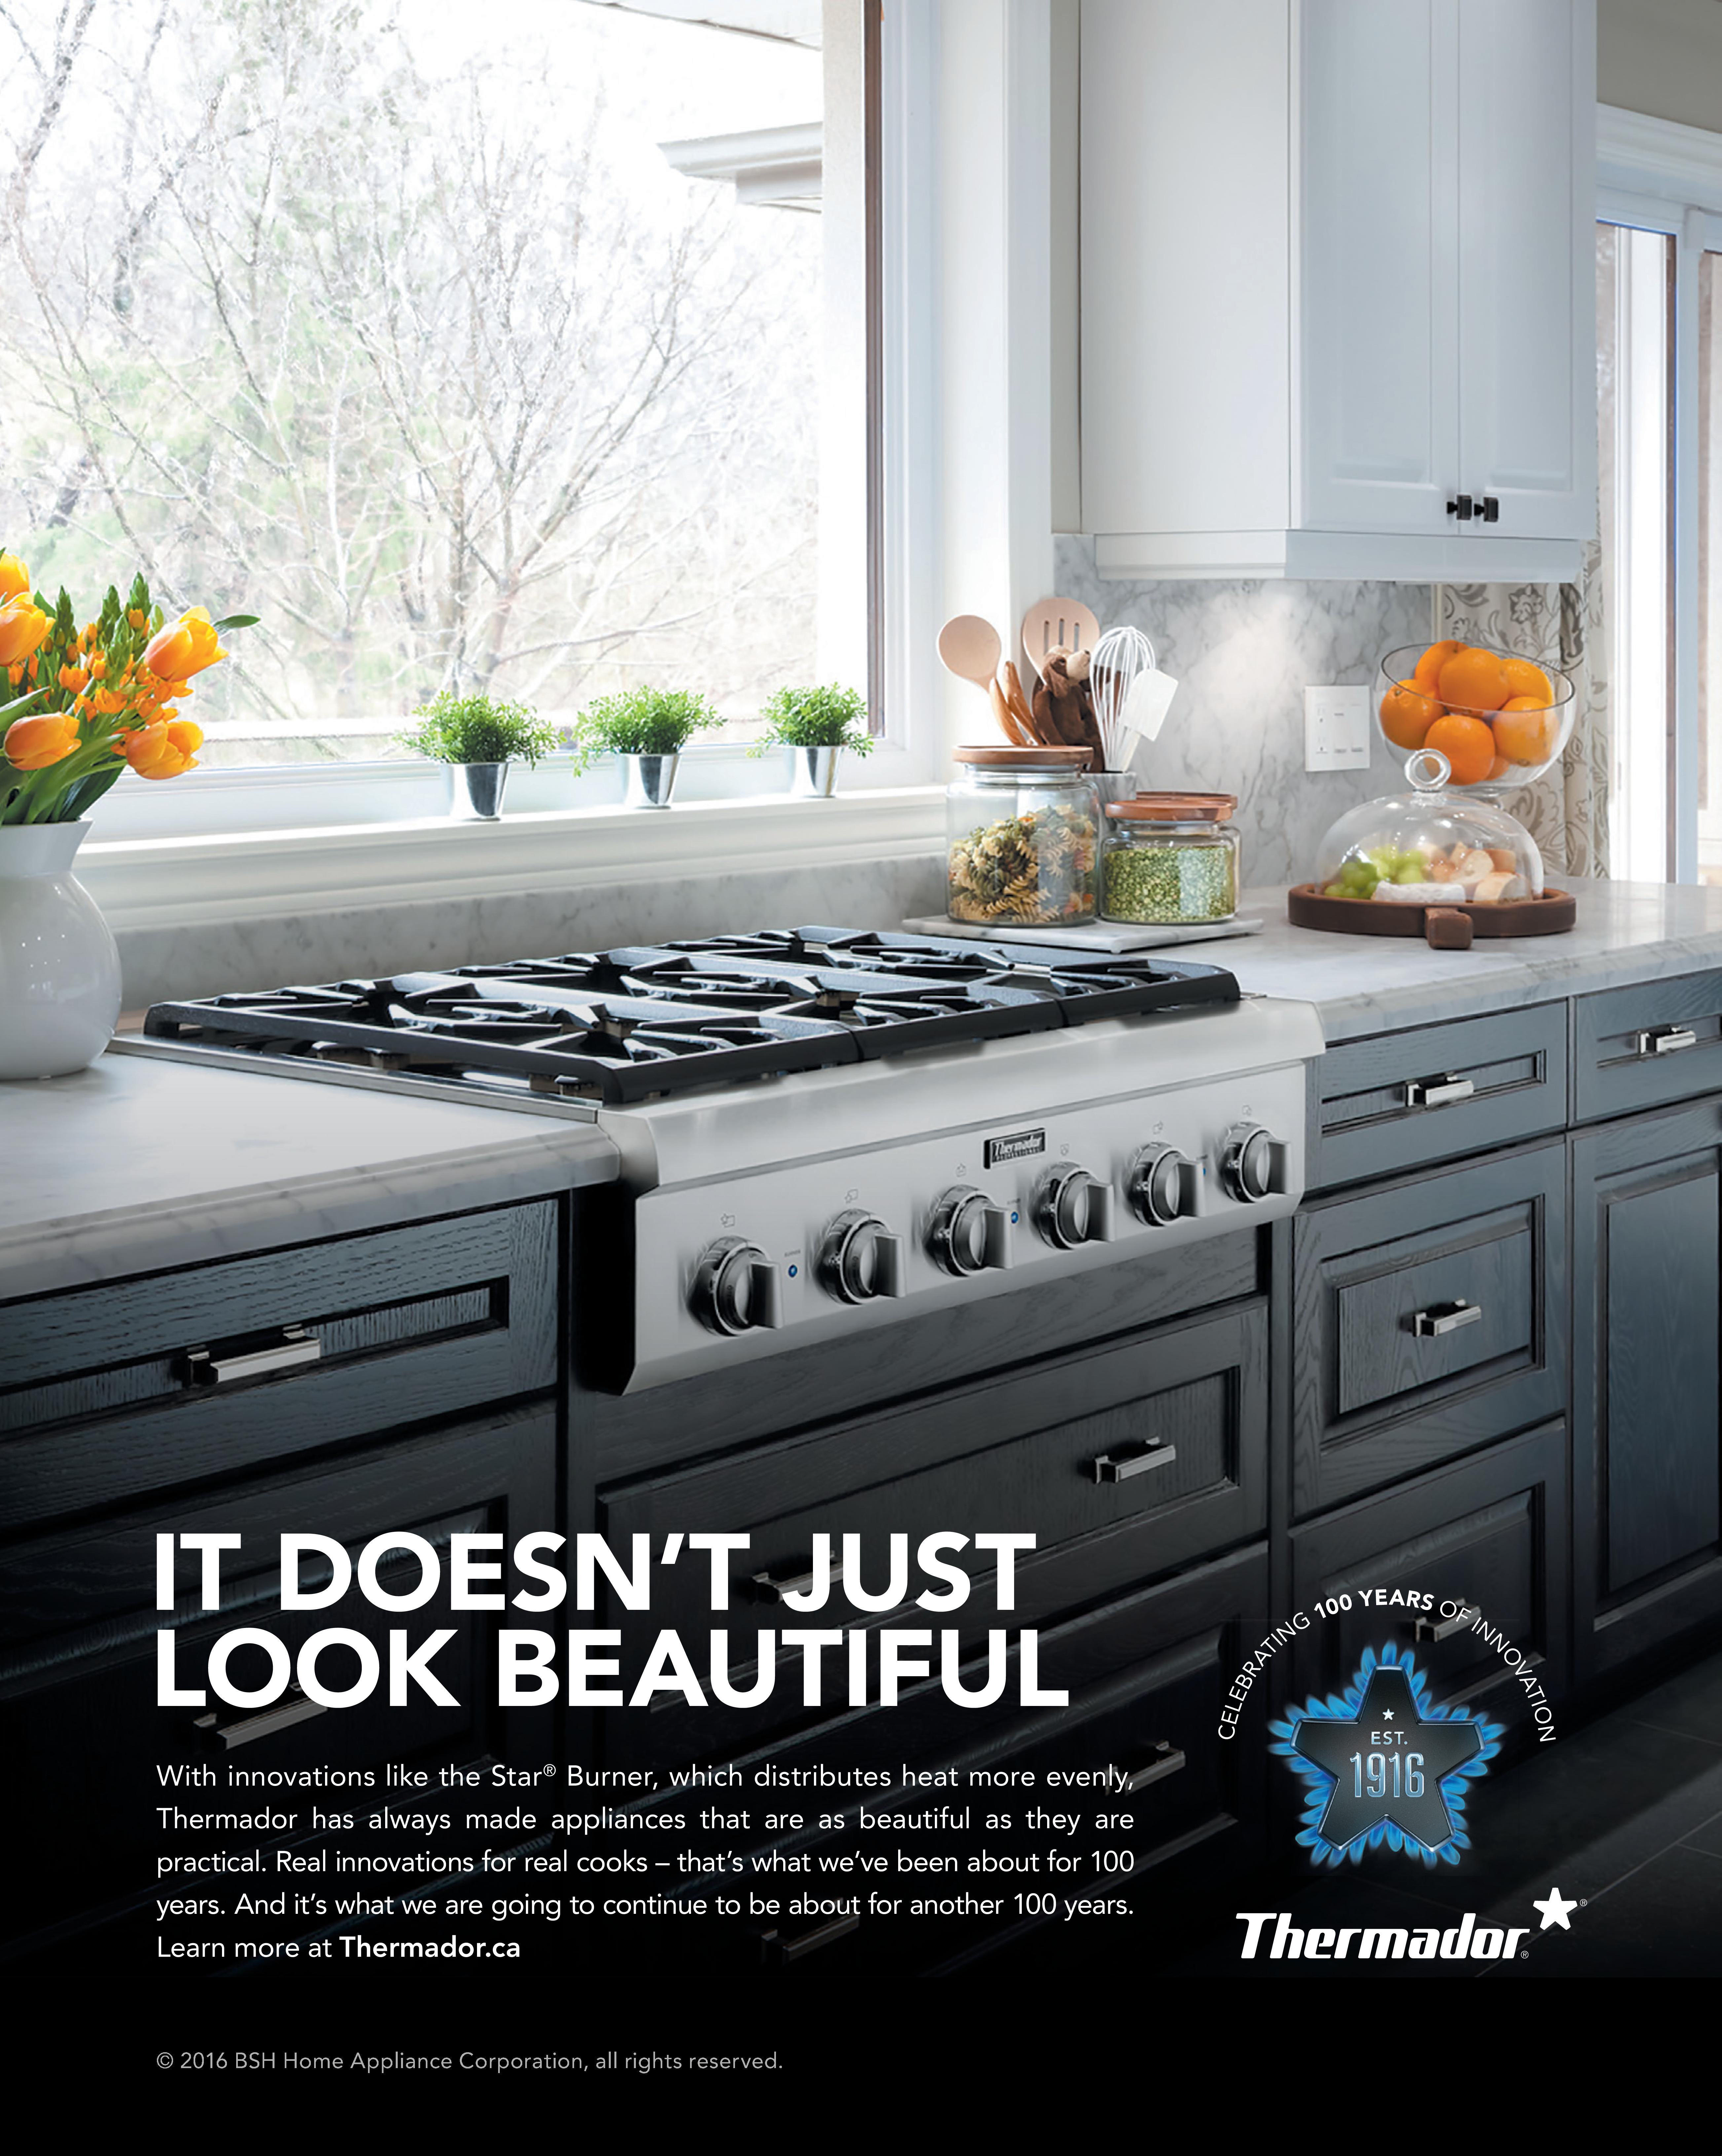 Cooks Brand Kitchen Appliances Bosch Thermador Target Wealthy Cooks A Strategy